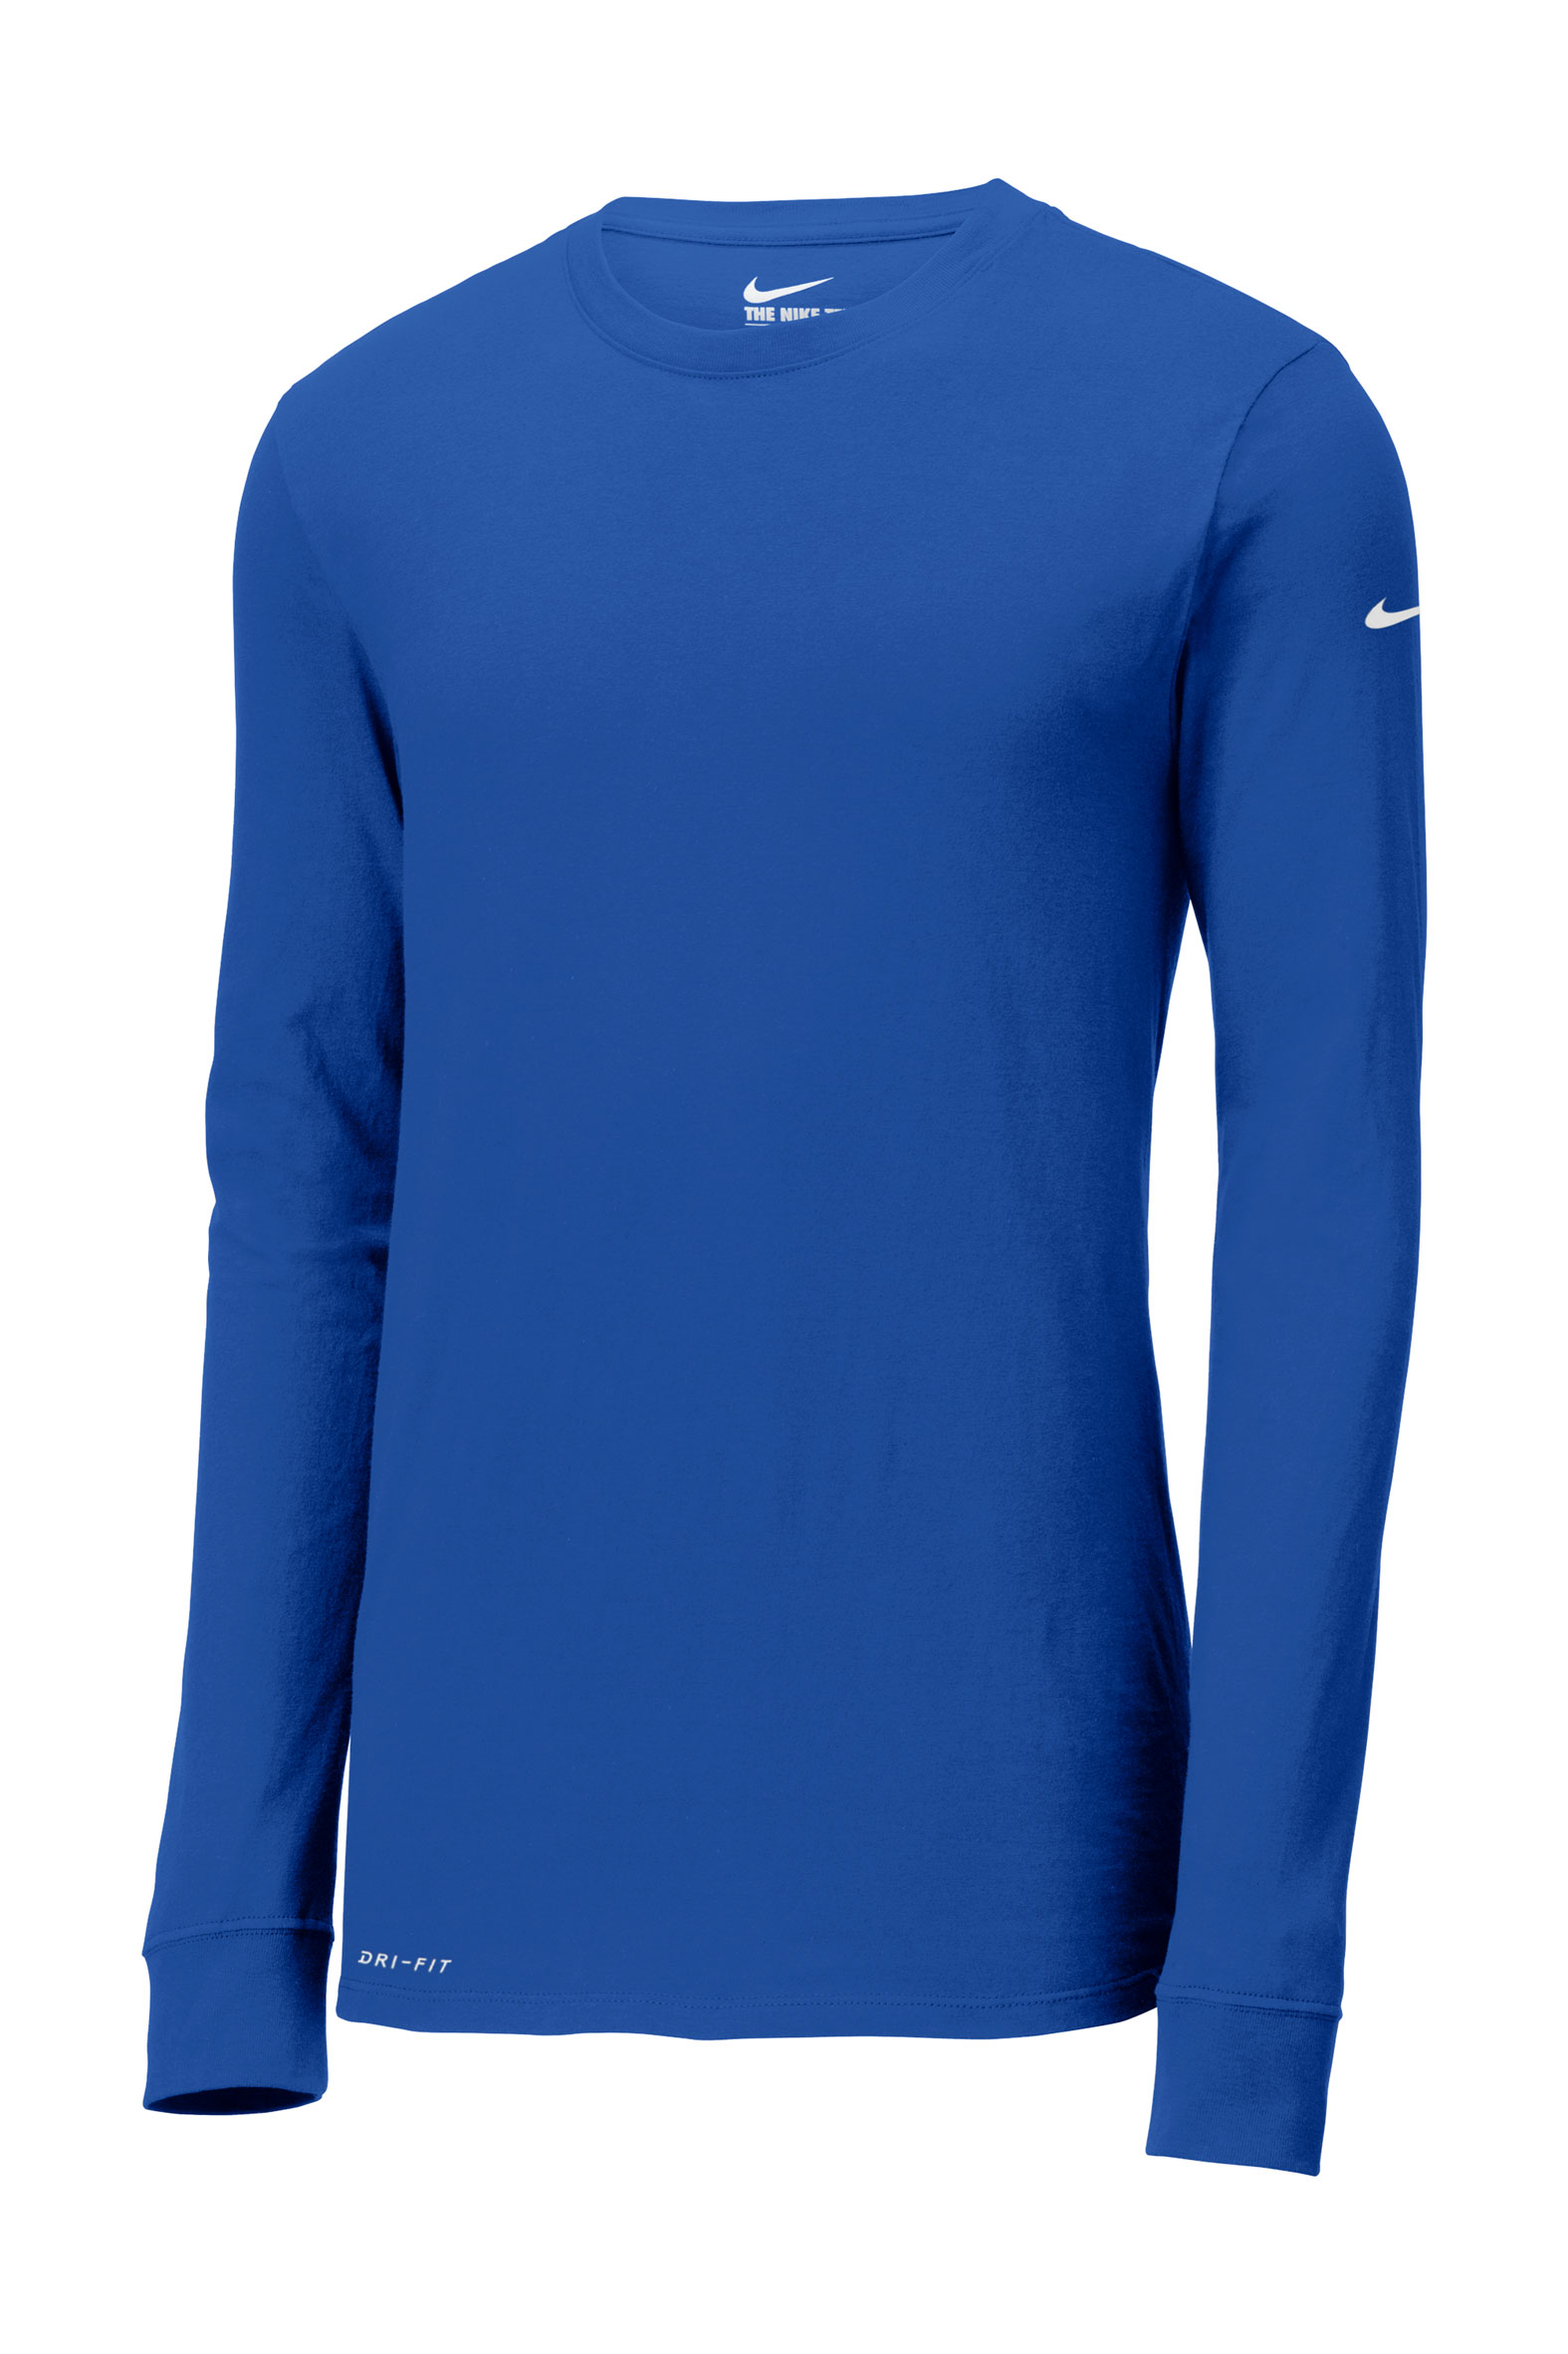 f5aea882b Nike Dri-FIT Cotton/Poly Long Sleeve Tee - Design Online